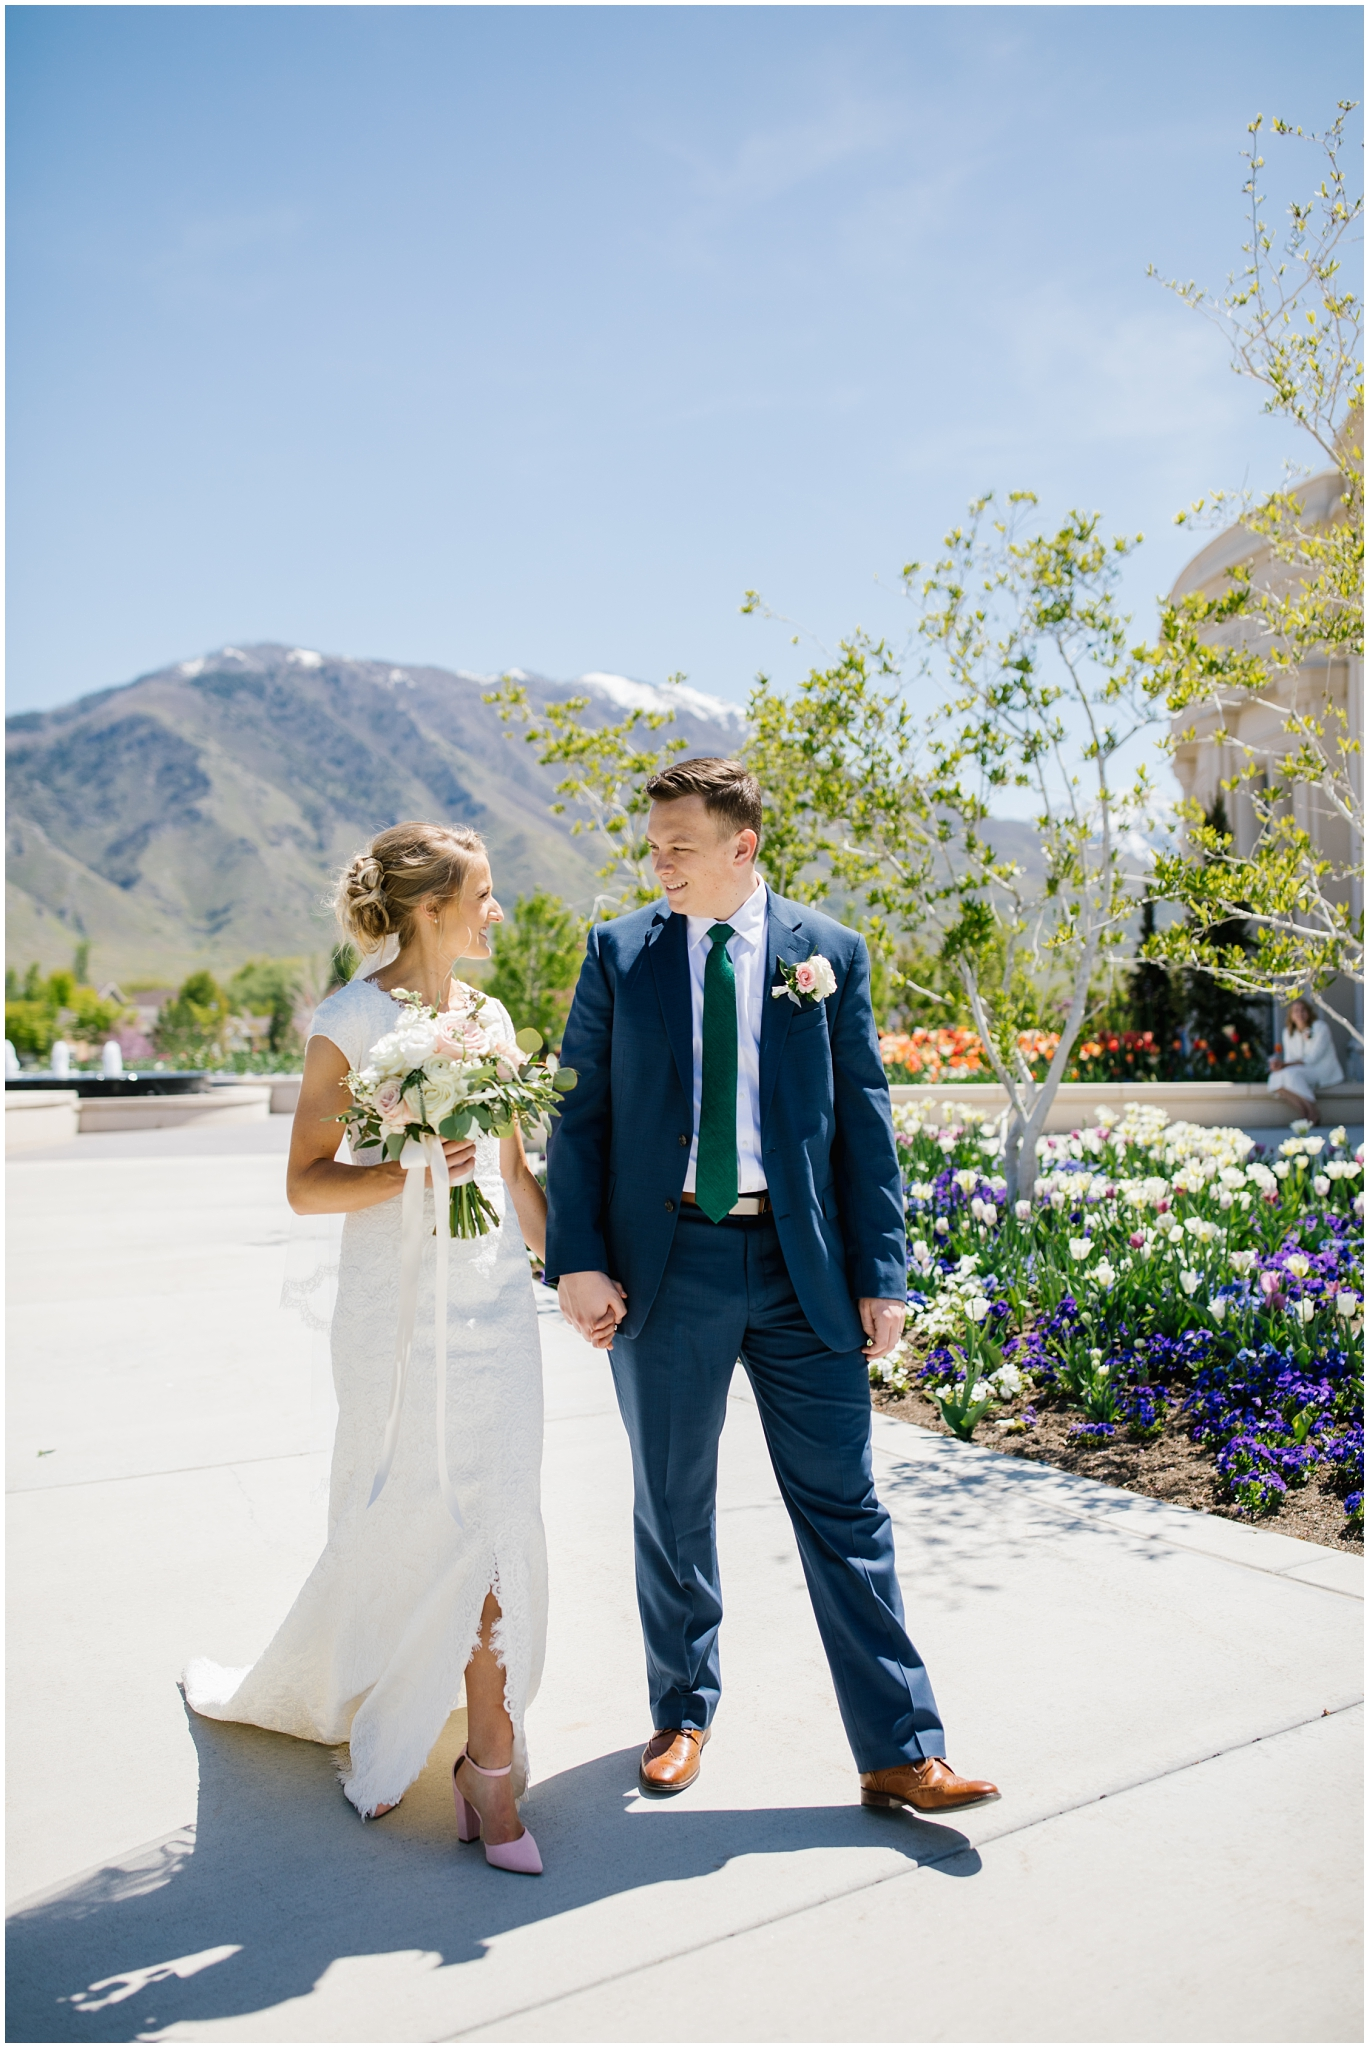 TA-Wedding-160_Lizzie-B-Imagery-Utah-Wedding-Photographer-Park-City-Salt-Lake-City-Thanksgiving-Point-Ashton-Gardens-Lehi-Utah.jpg